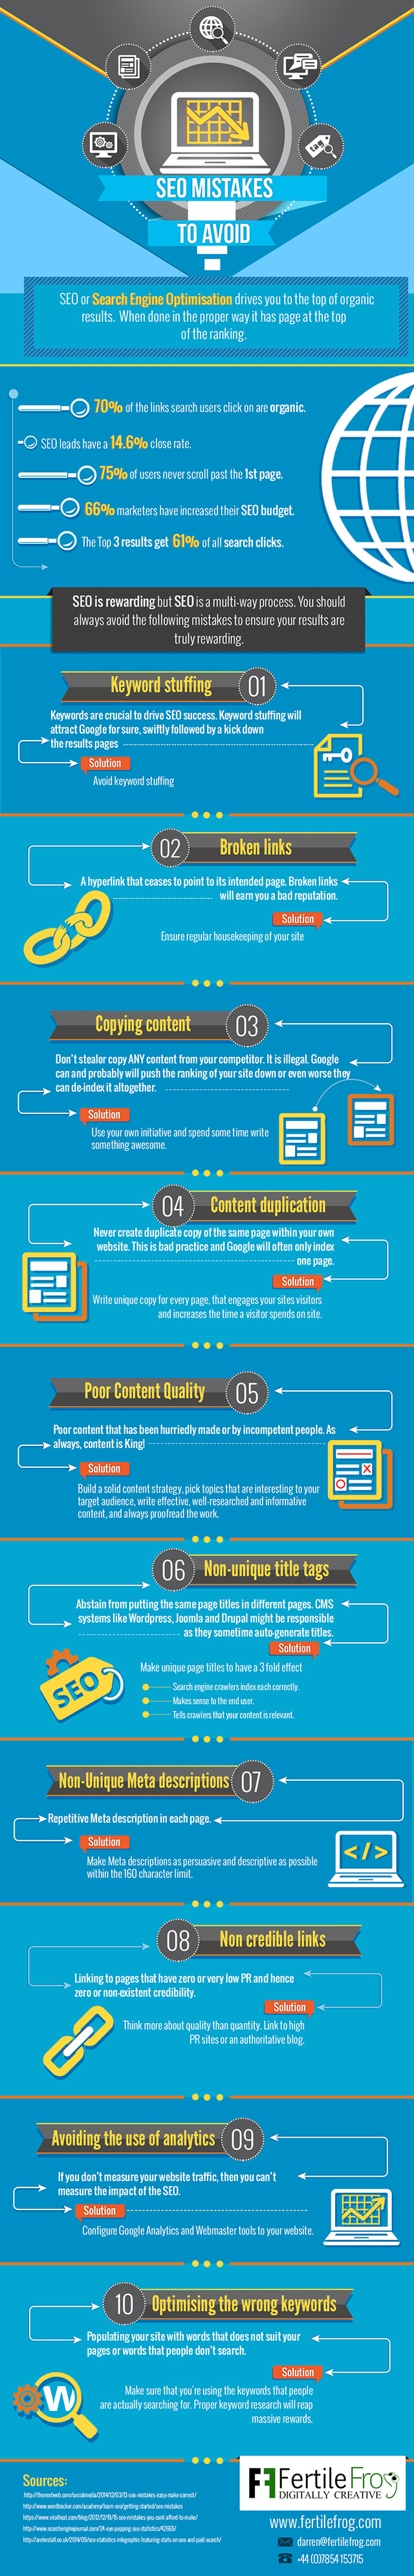 10 SEO Mistakes That Will Stop You Reaching Page One of Google